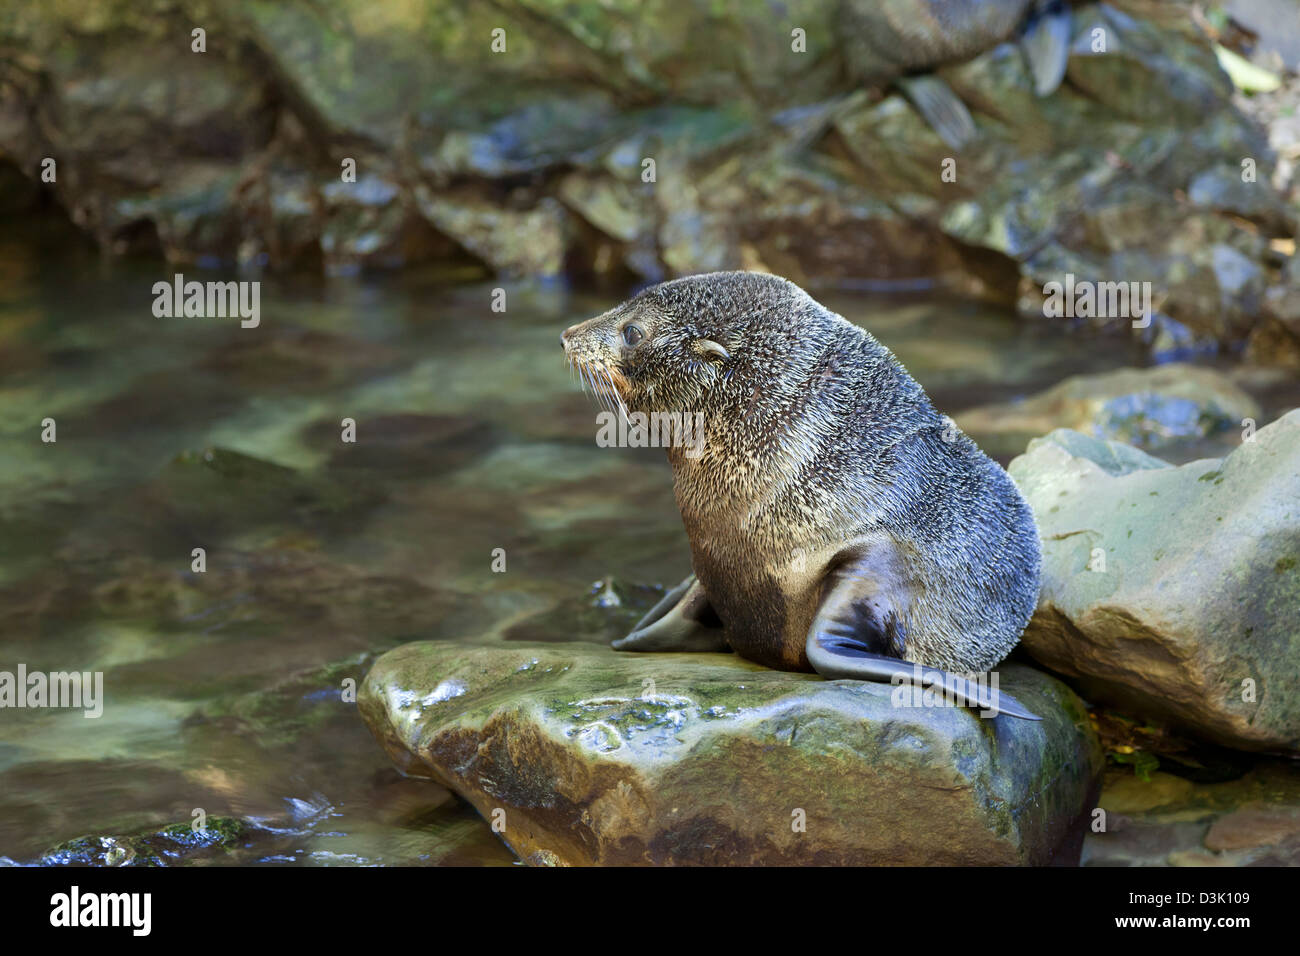 Yawning Ohau Streams seal pup sitting on a rock, New Zealand - Stock Image